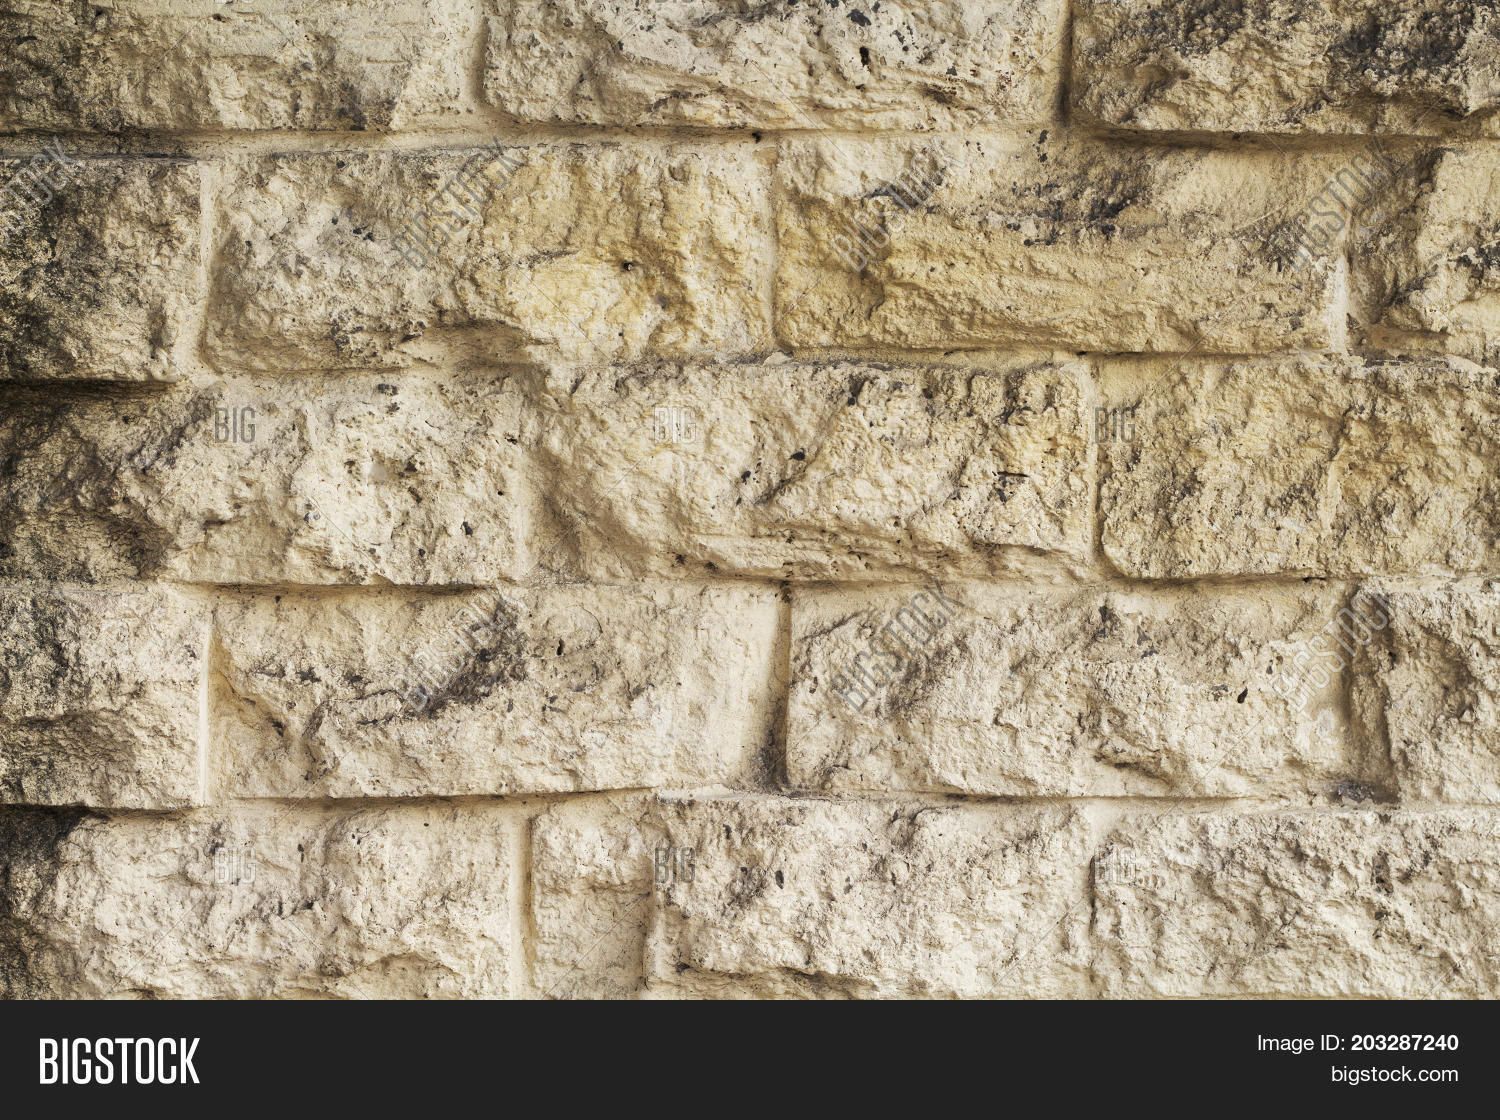 Yellow Natural Stone Image Photo Free Trial Bigstock